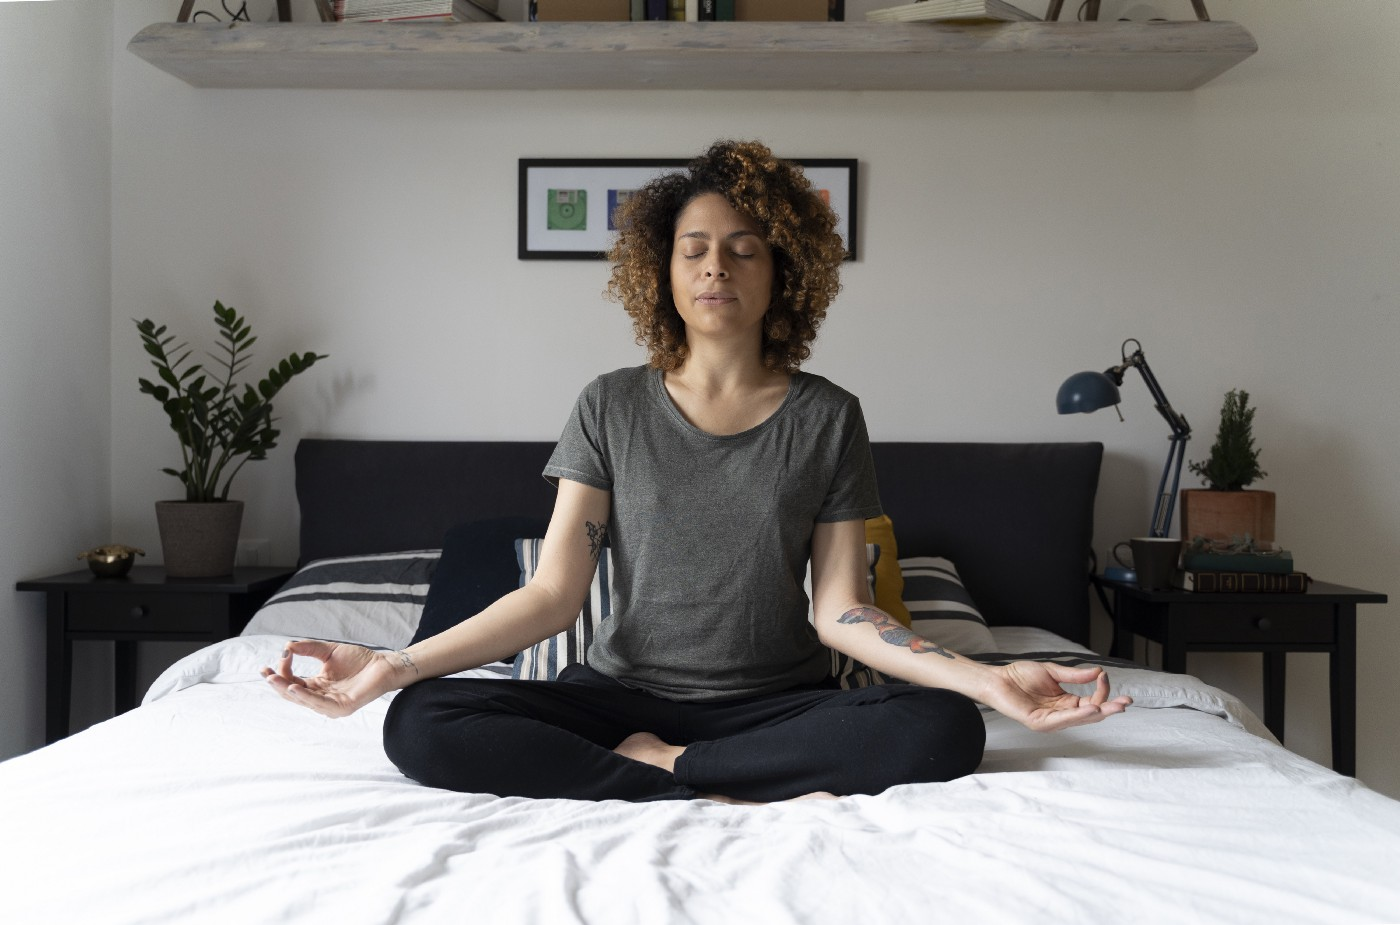 A woman sits on her bed and practices mindfulness through meditation.